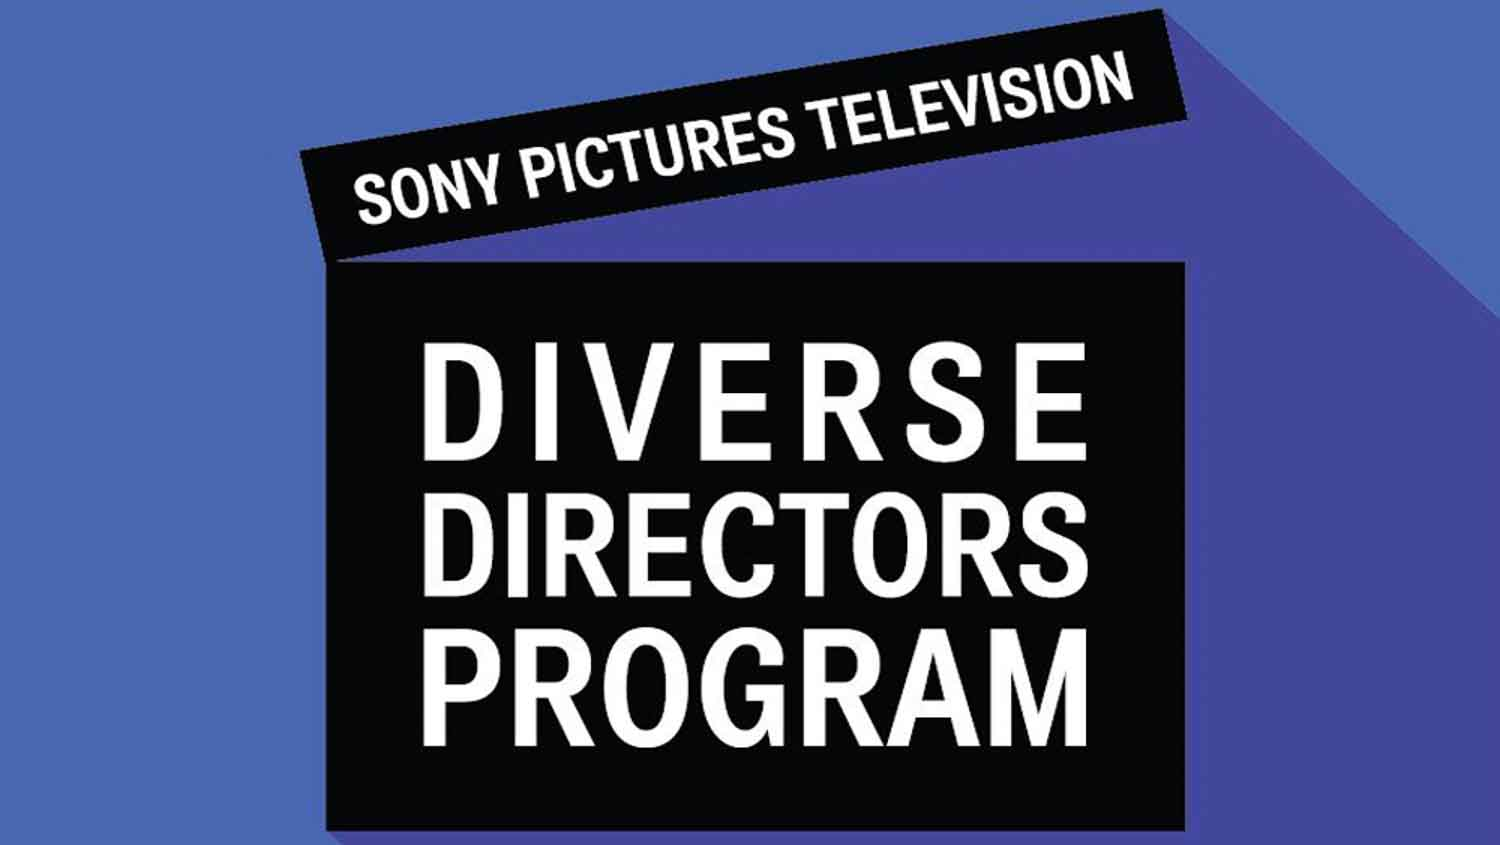 Sony Pictures Television Diverse Writers